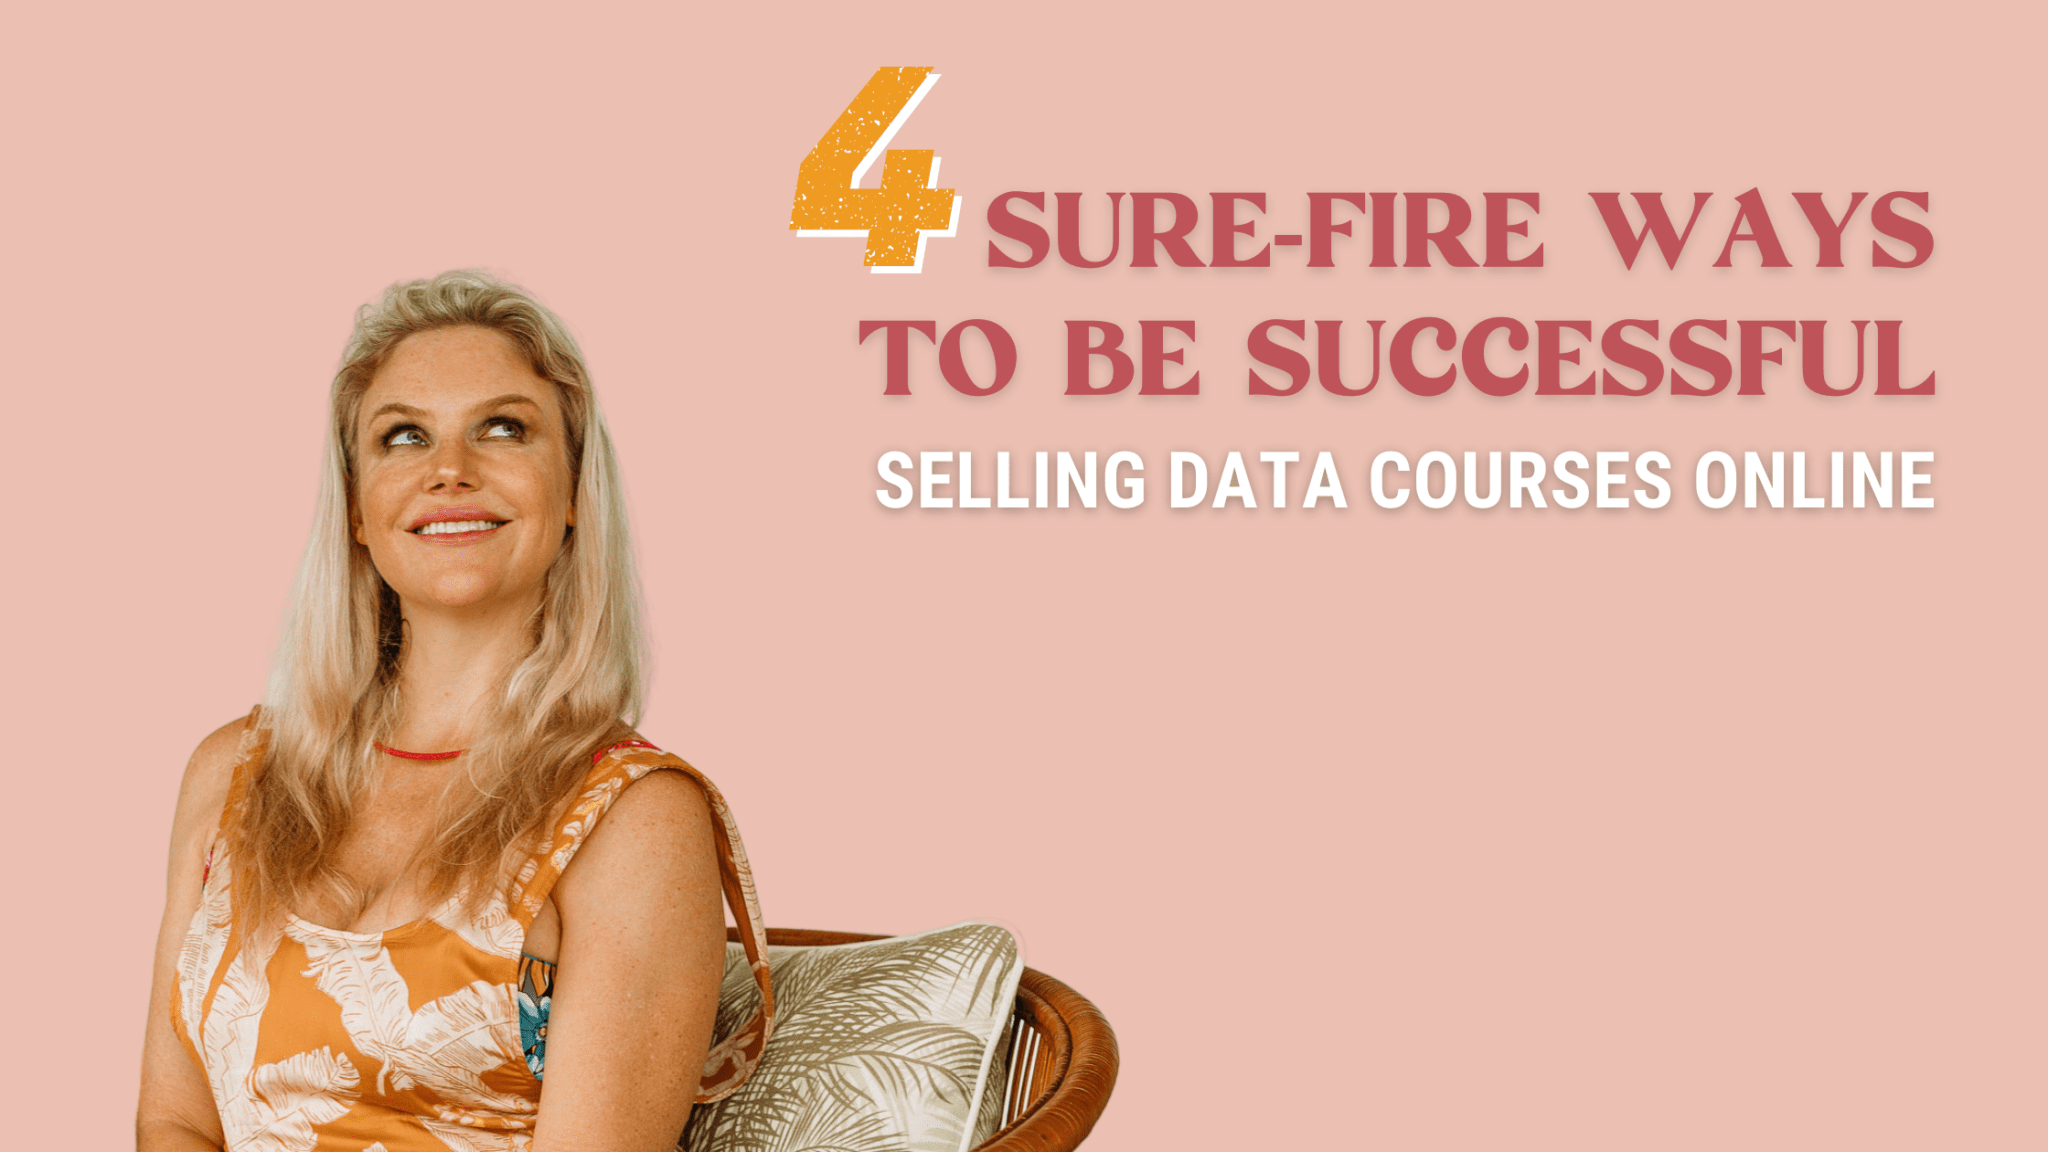 Interested in selling data courses online? Don't make these beginner's mistakes!